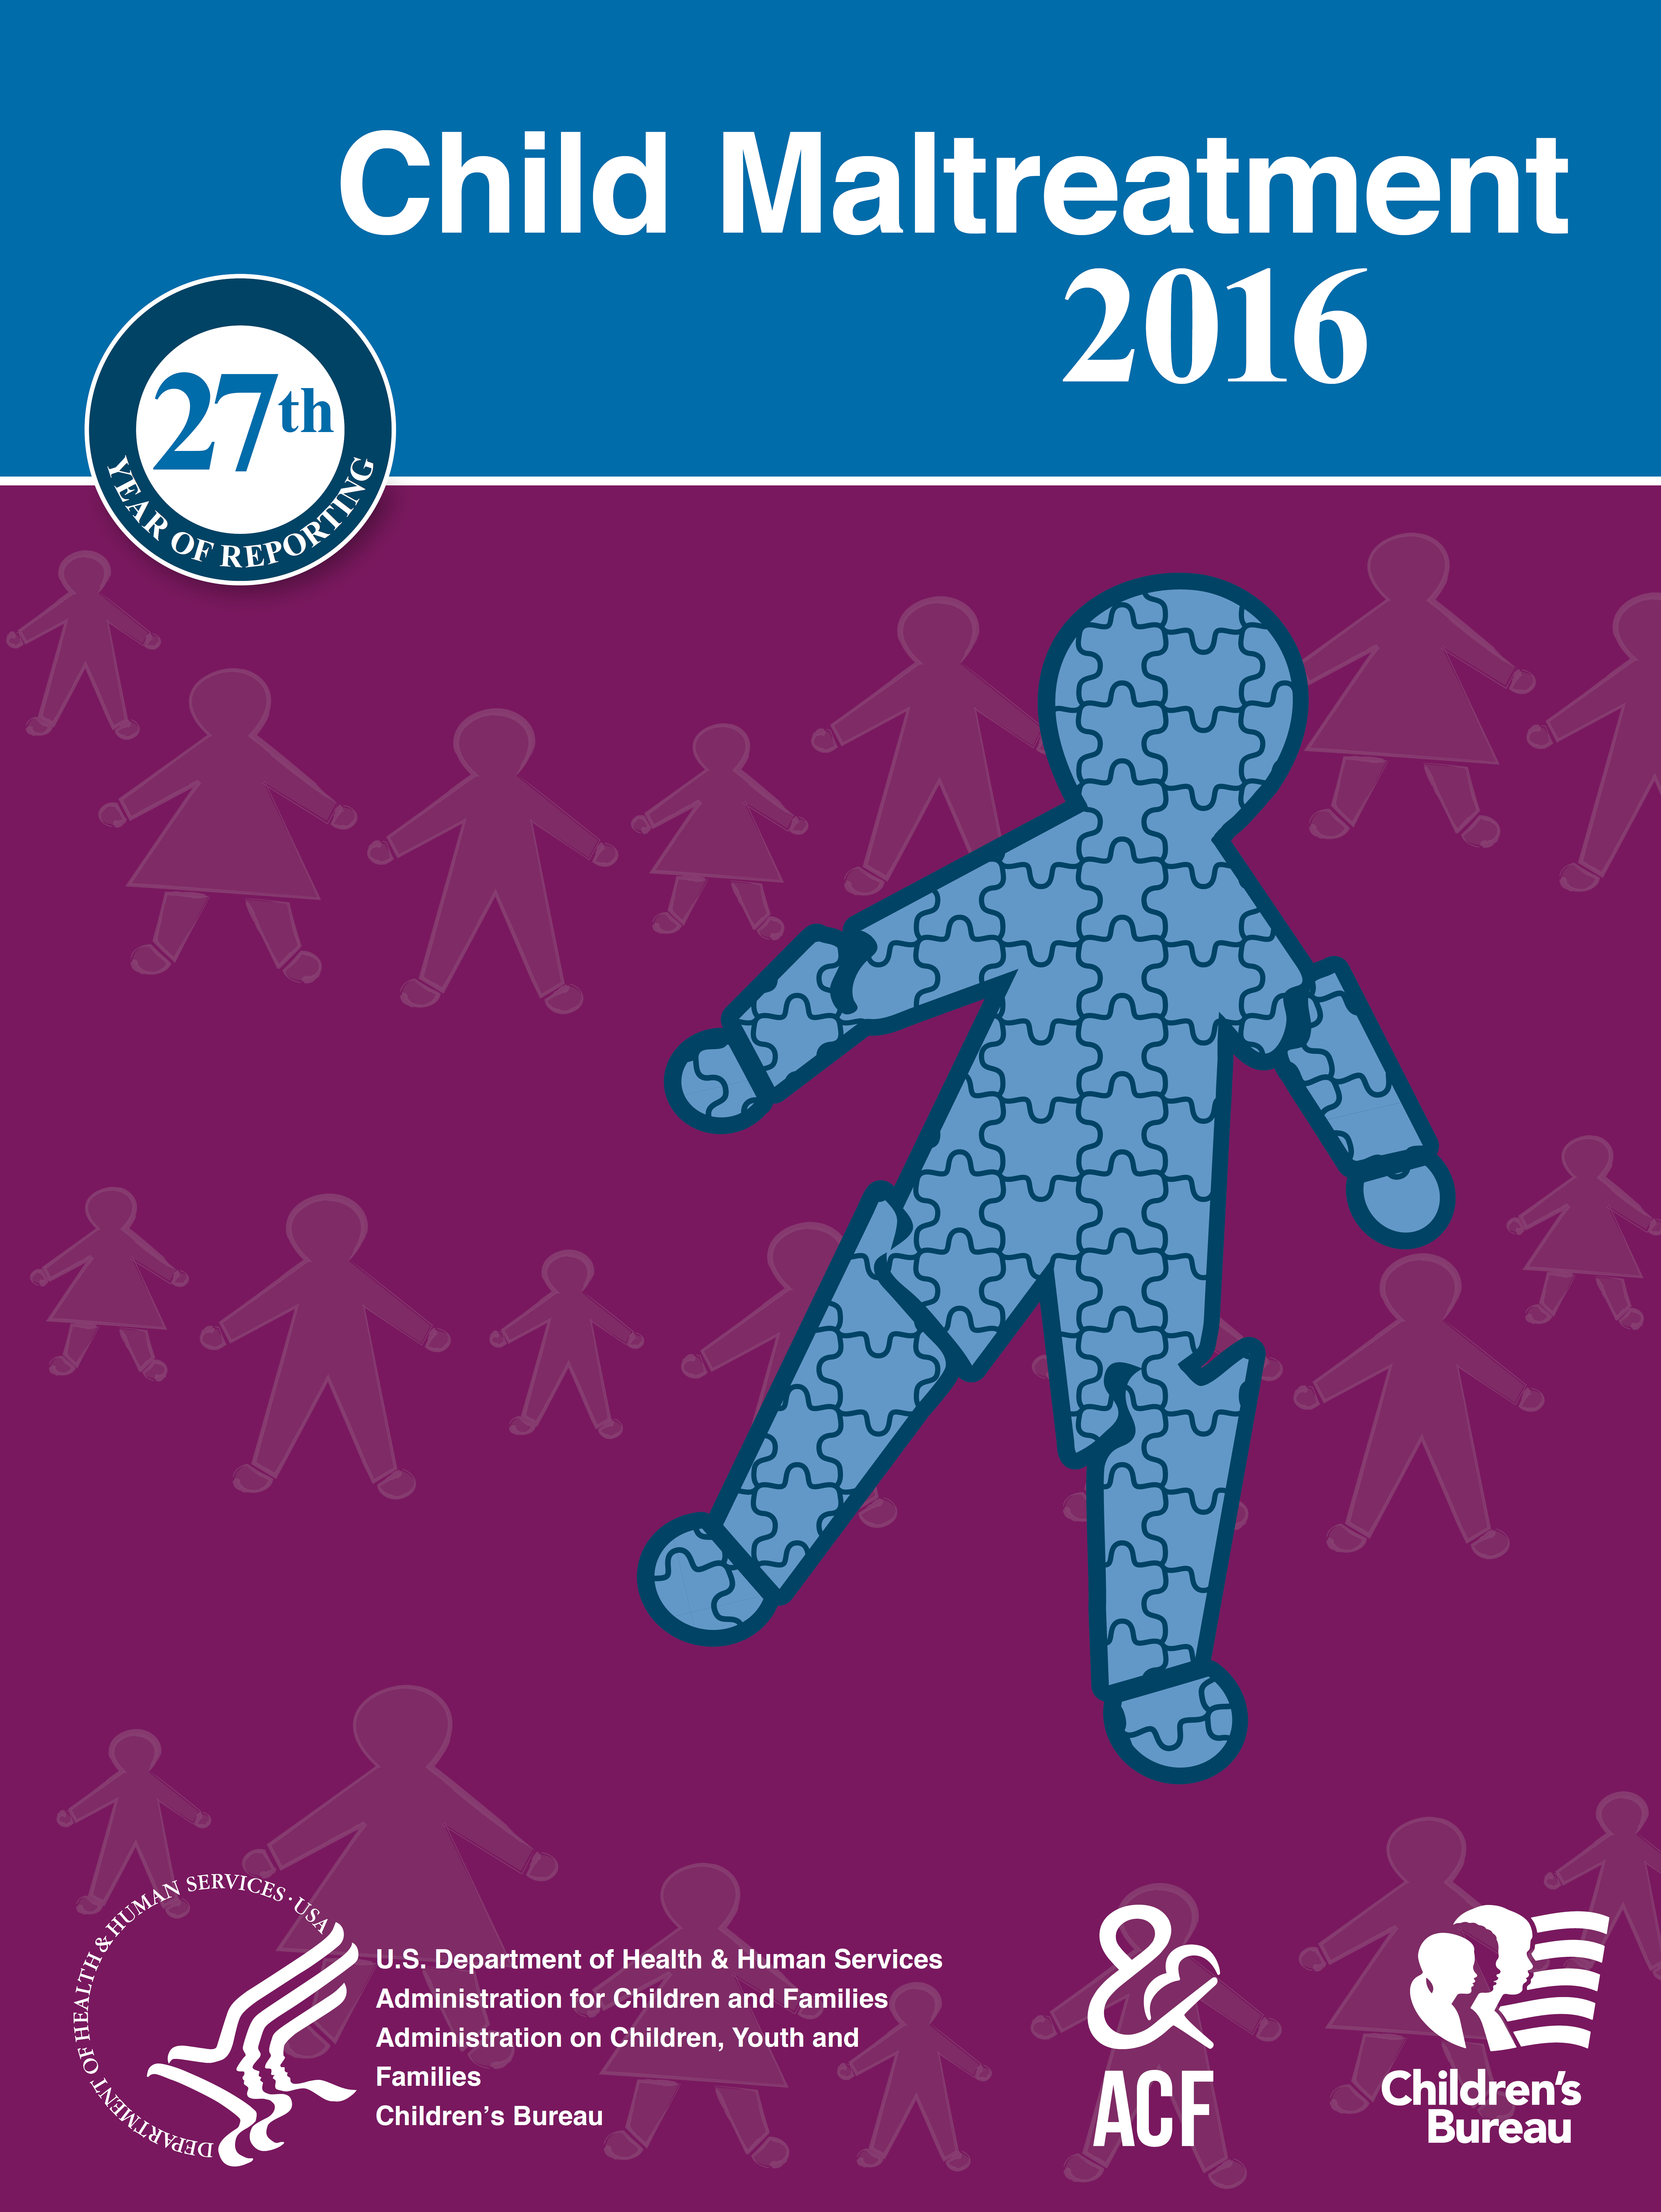 Graphic of Child Maltreatment 2016 Cover